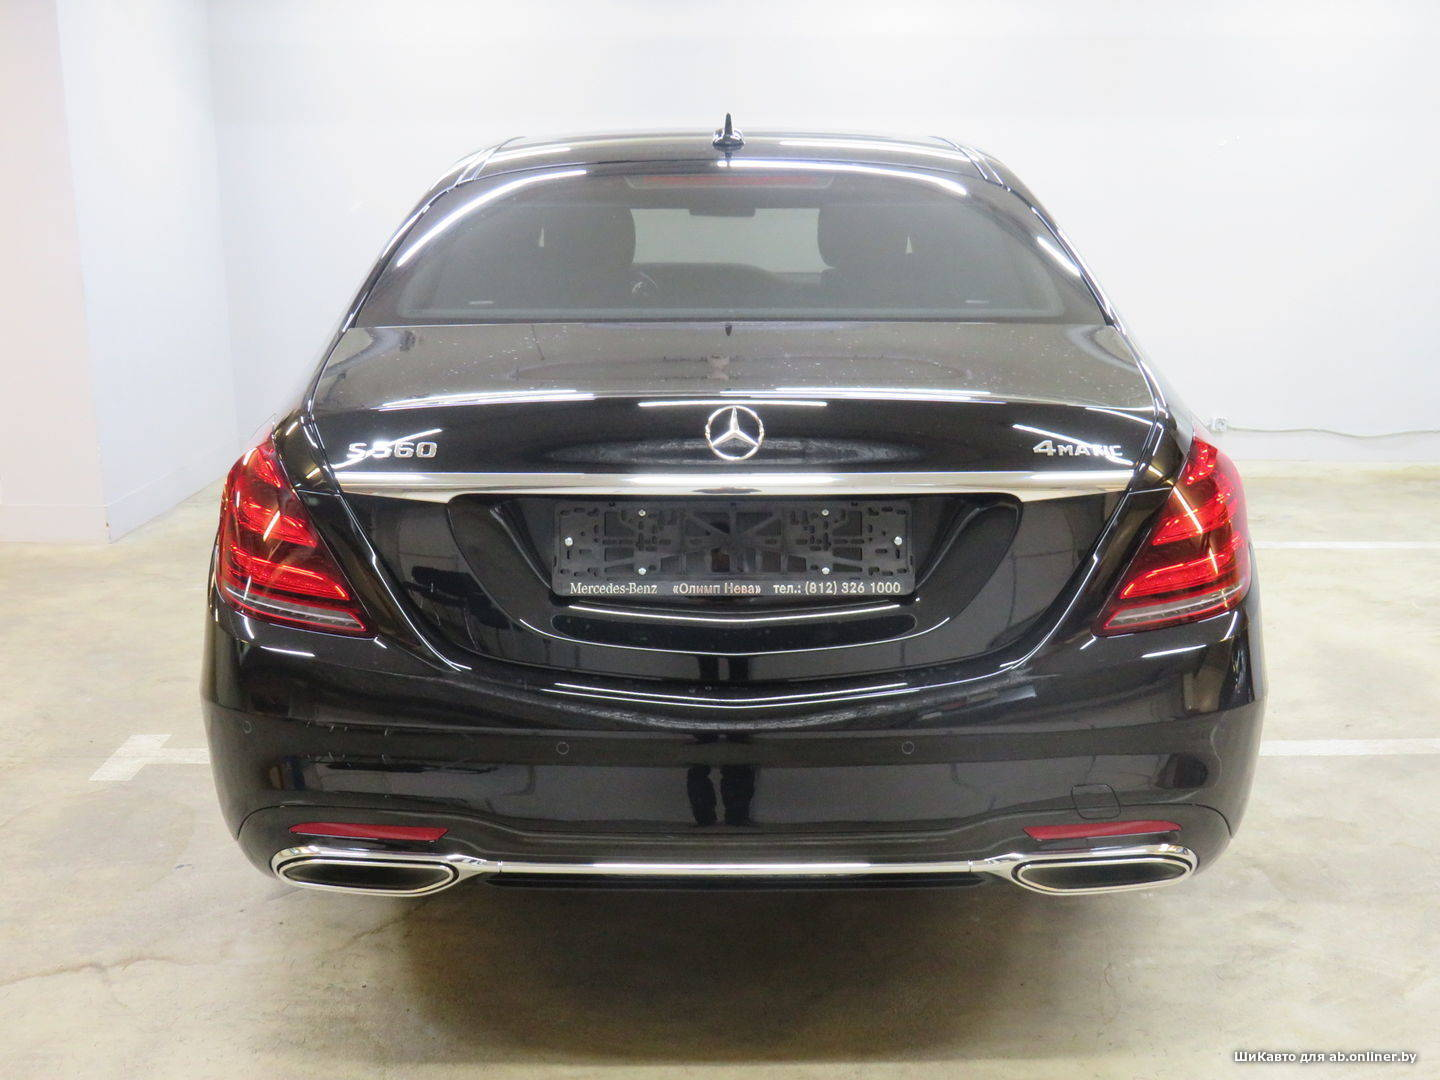 Mercedes S560 4MATIC